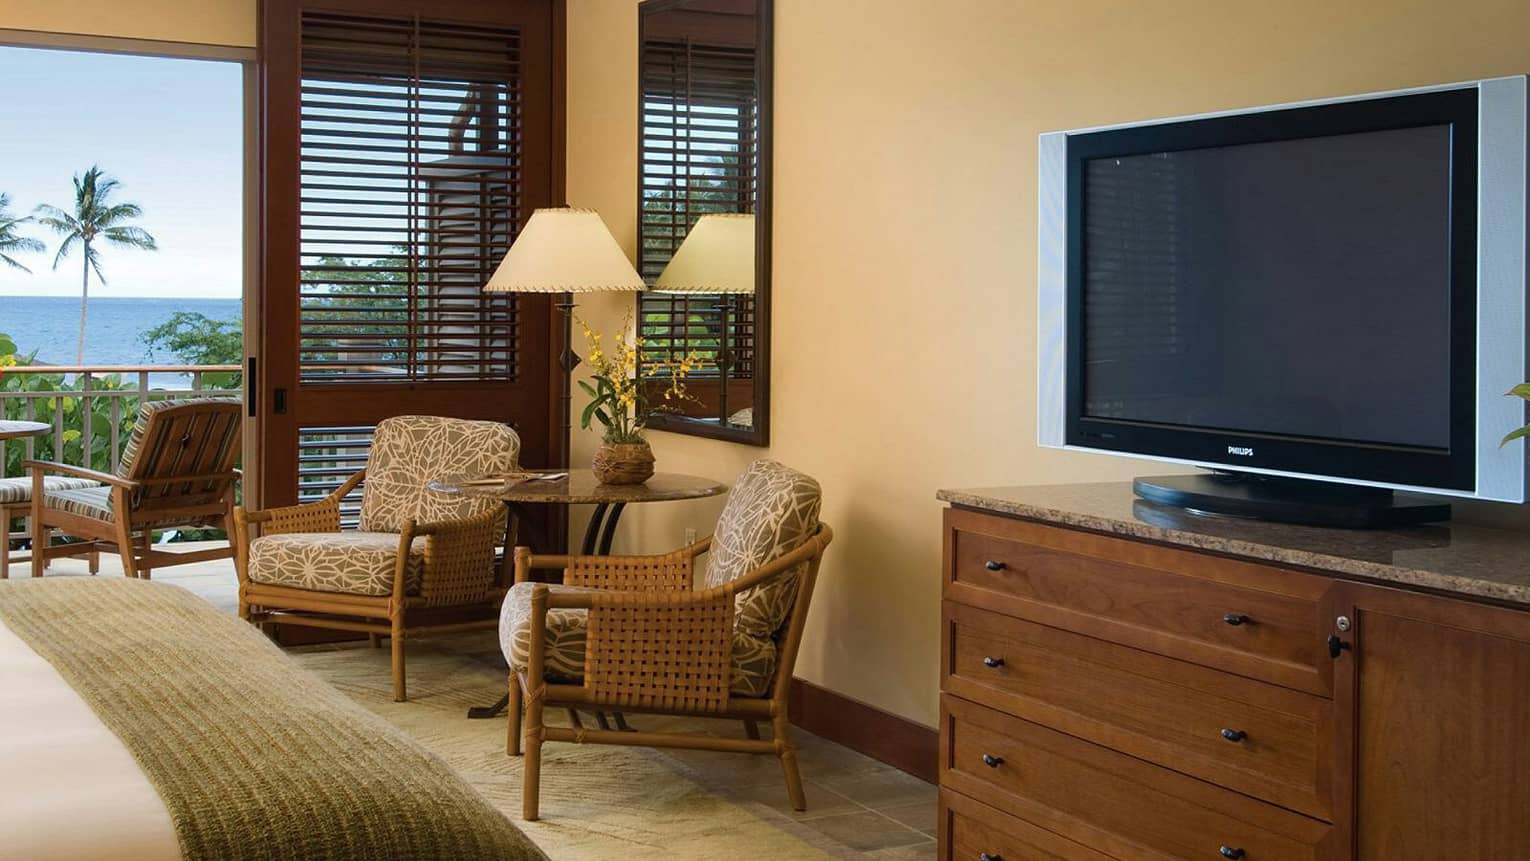 Oceanfront Room end of bed with folded wood blanket, dresser with TV, table and chairs by patio